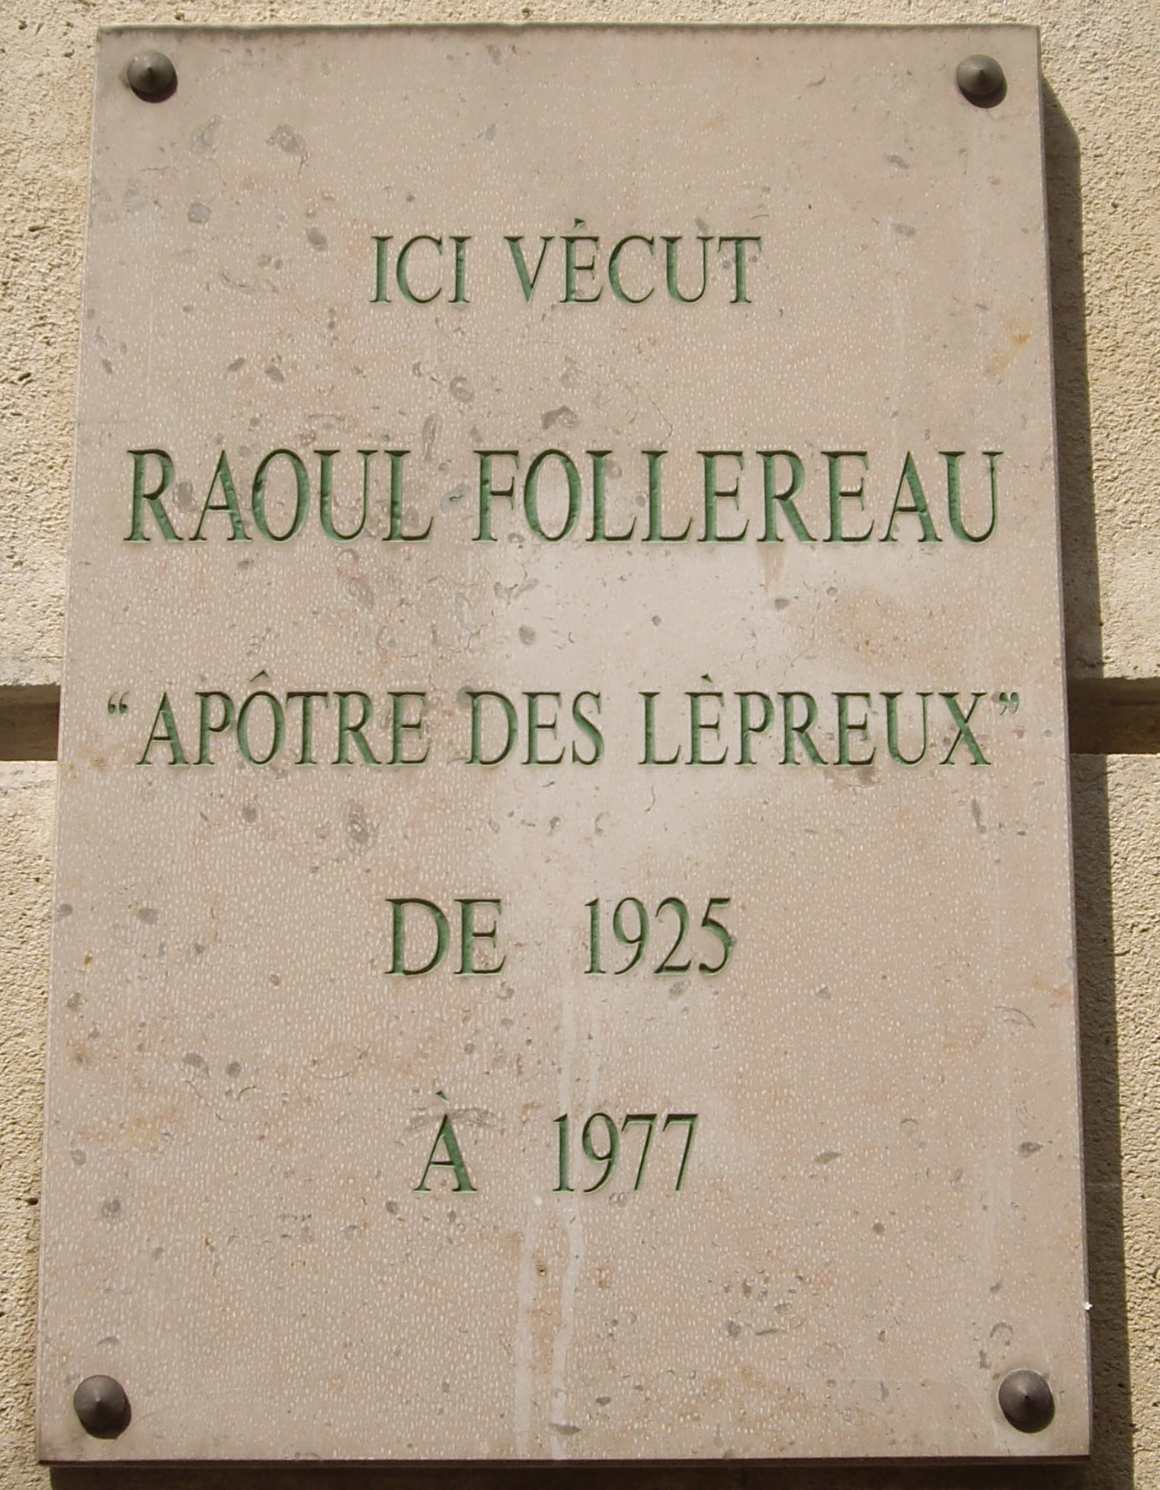 http://upload.wikimedia.org/wikipedia/commons/c/c7/Plaque_Raoul_Follereau,_46_rue_du_G%C3%A9n%C3%A9ral-Delestraint,_Paris_16.jpg